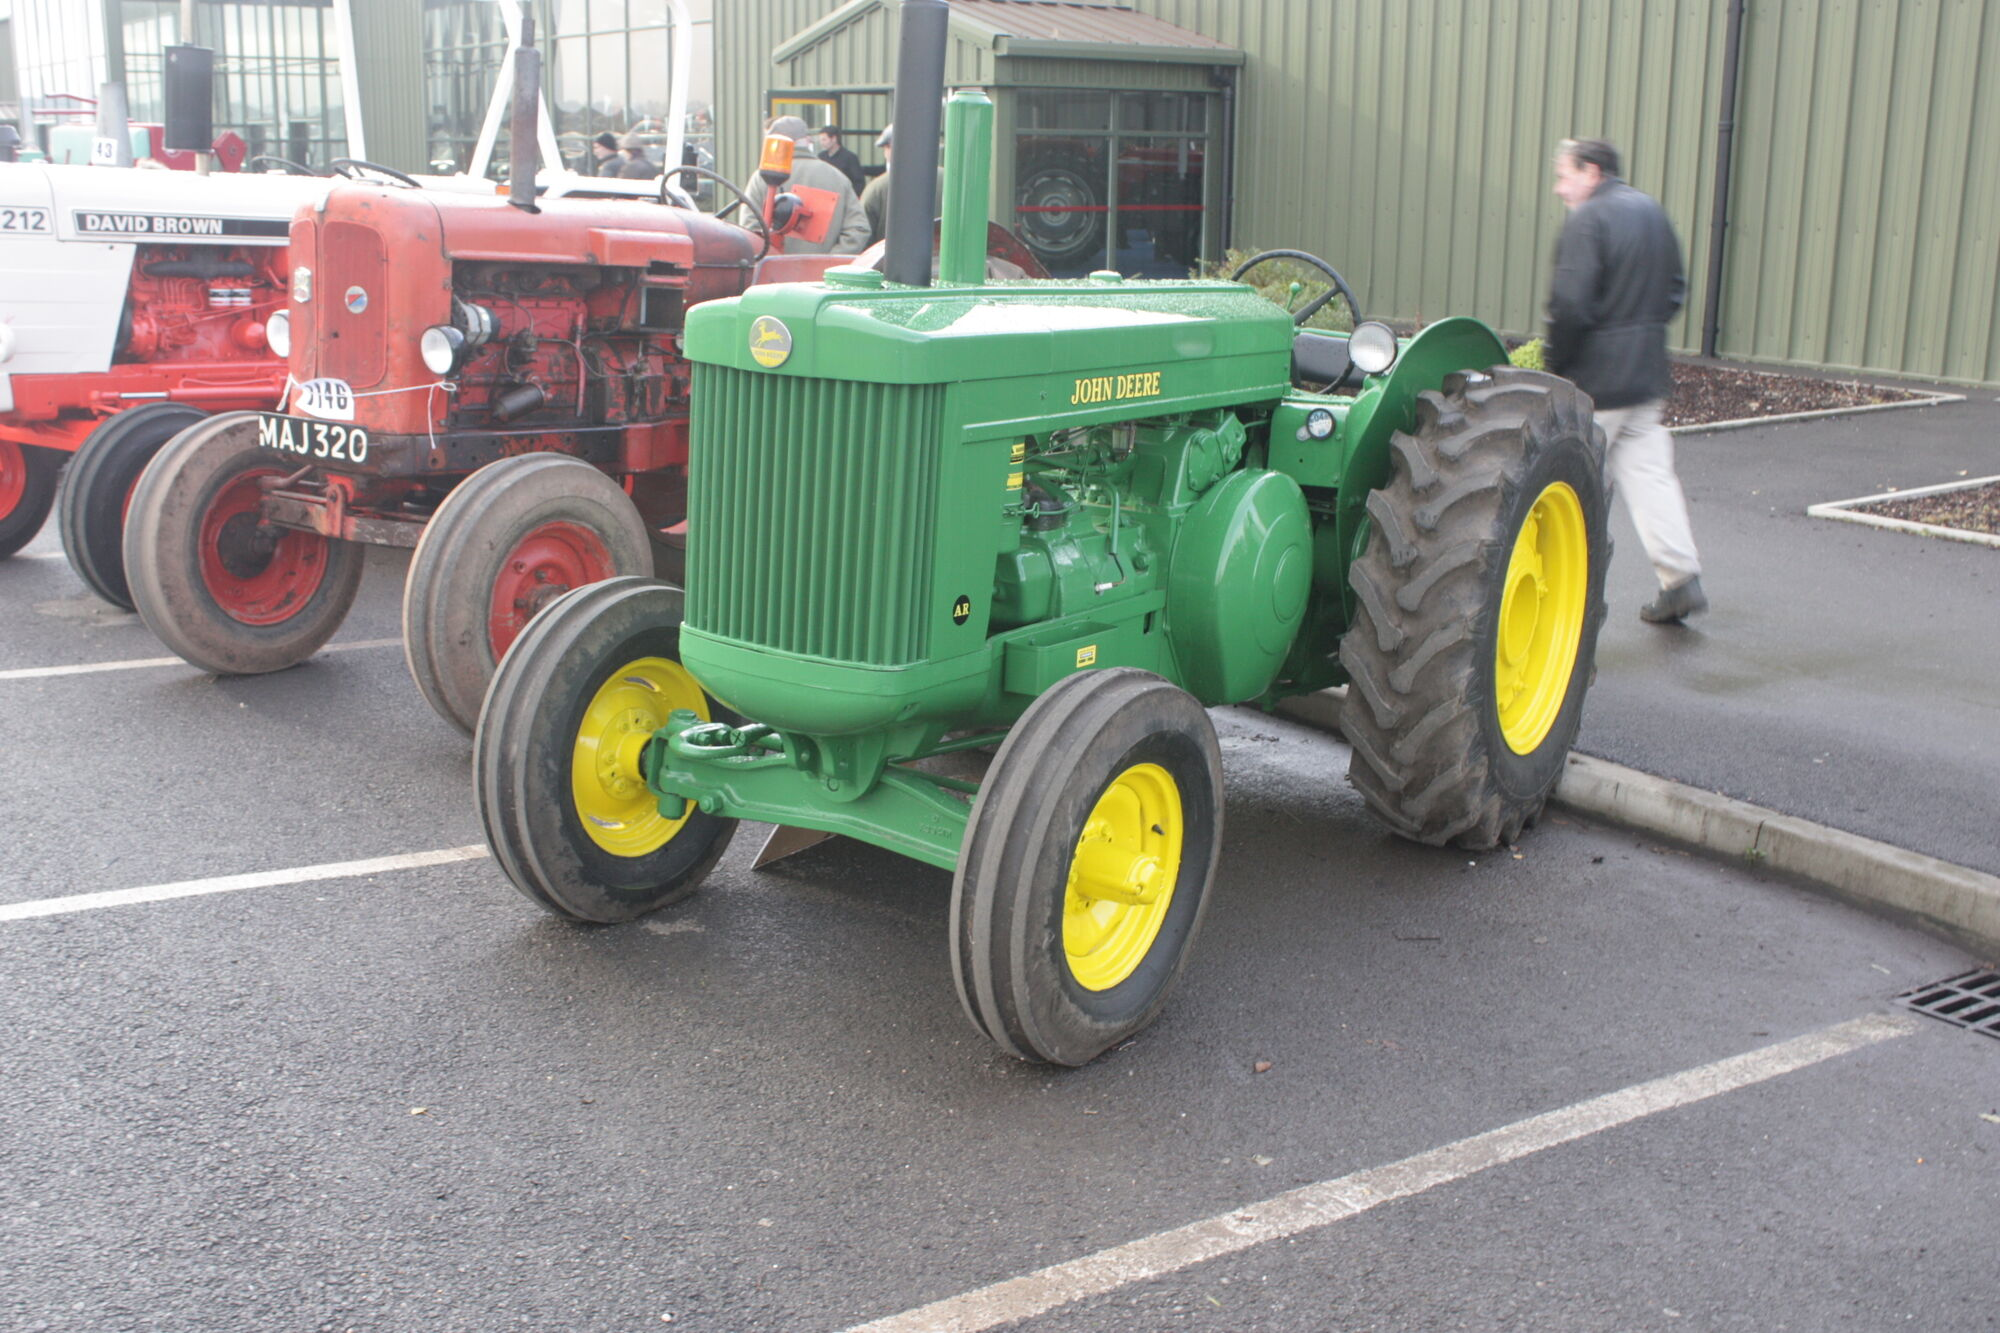 Category:26 hp tractors   Tractor & Construction Plant ...